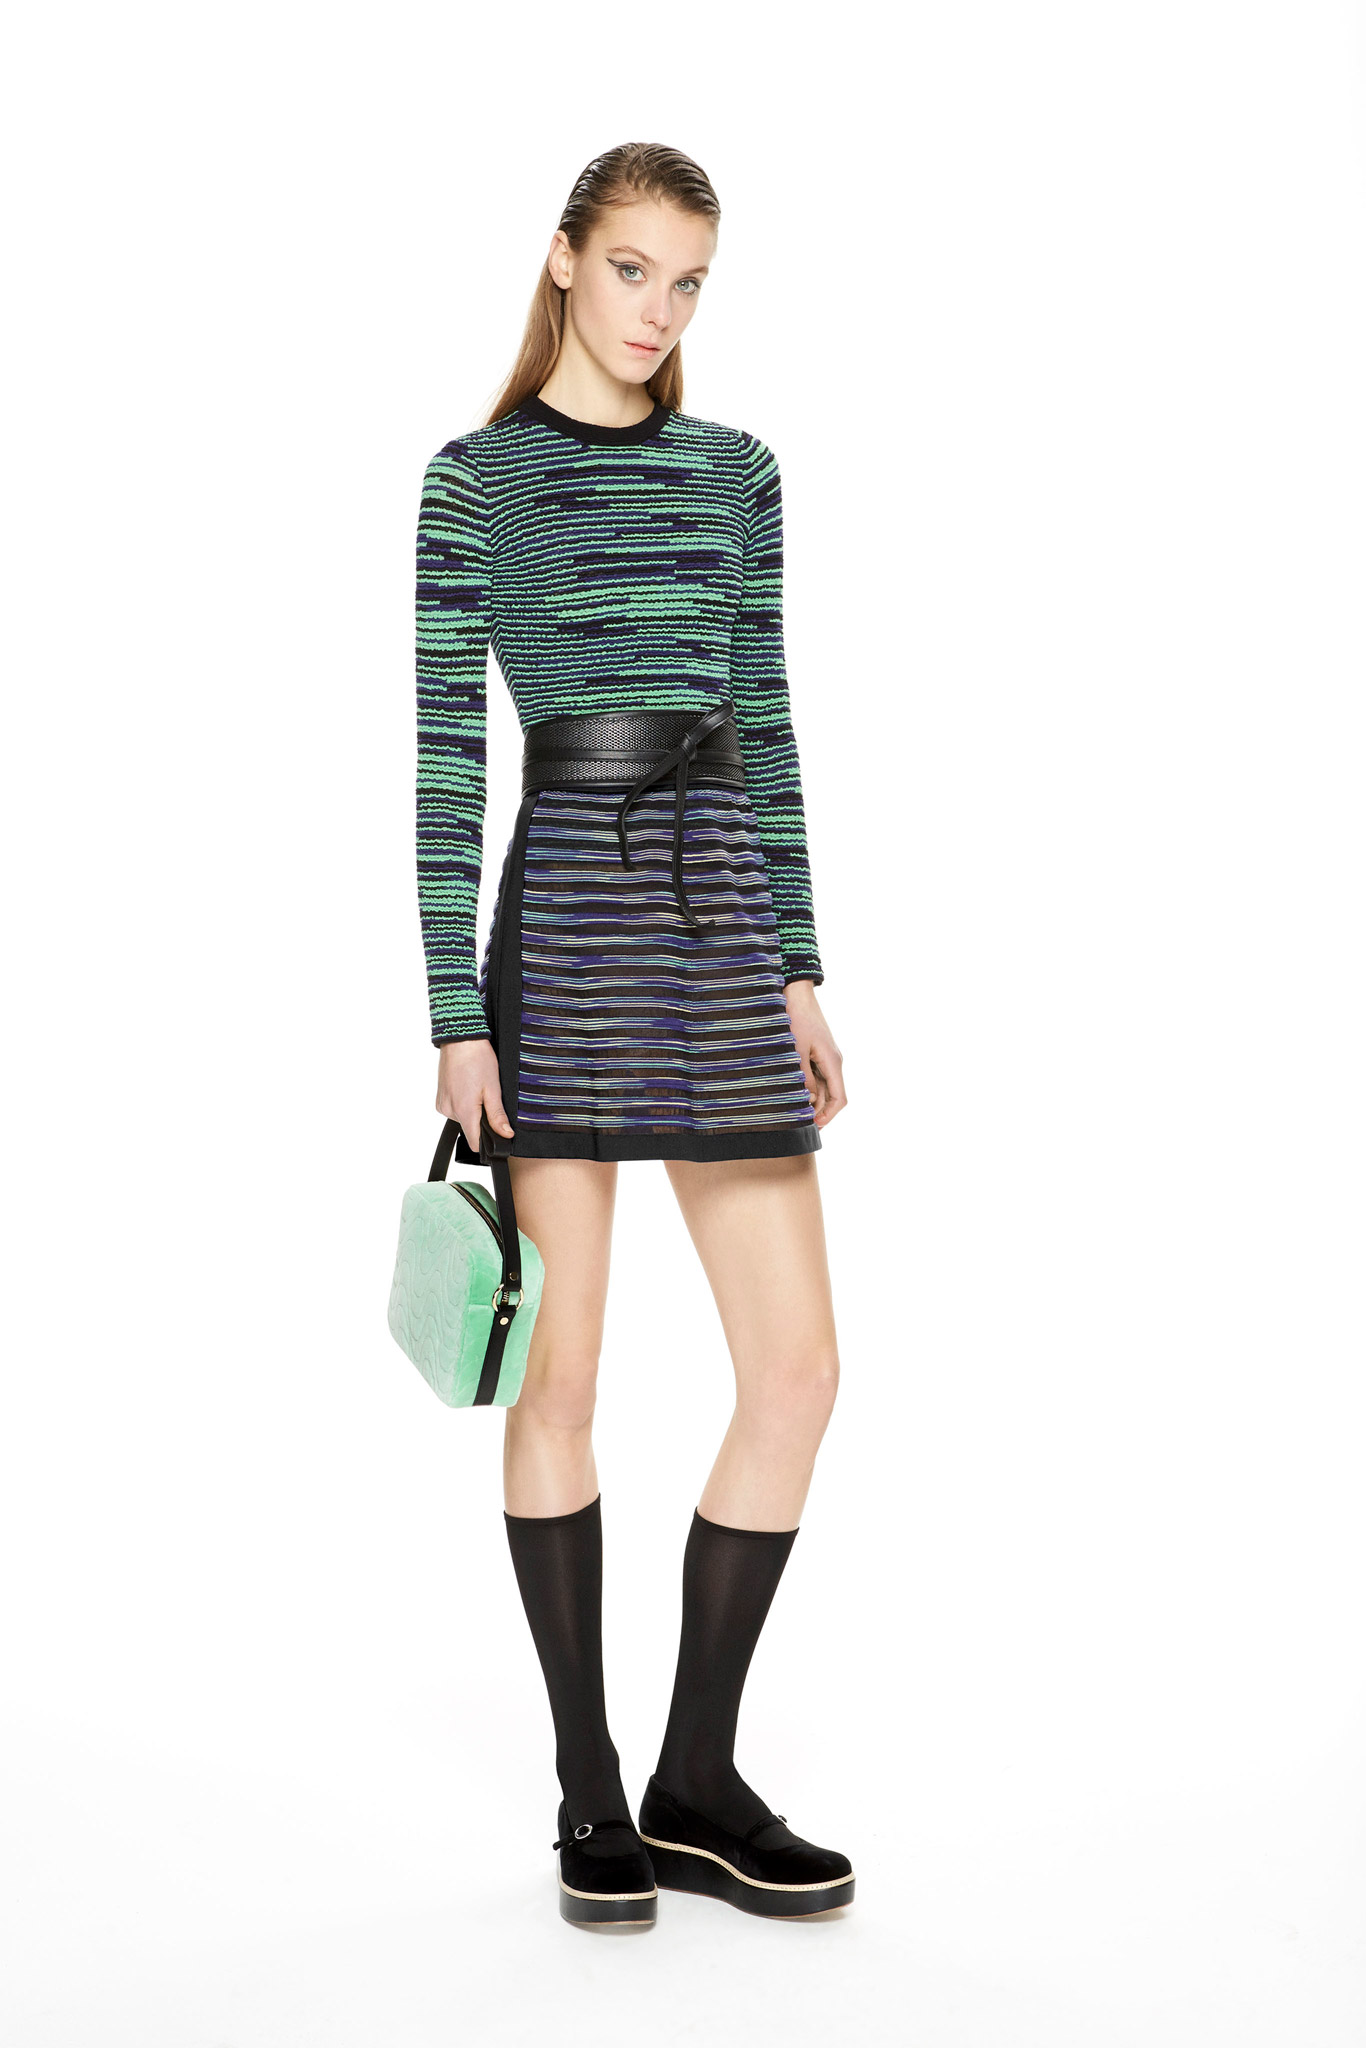 M Missoni Dress with Obi Belt Fall 2015